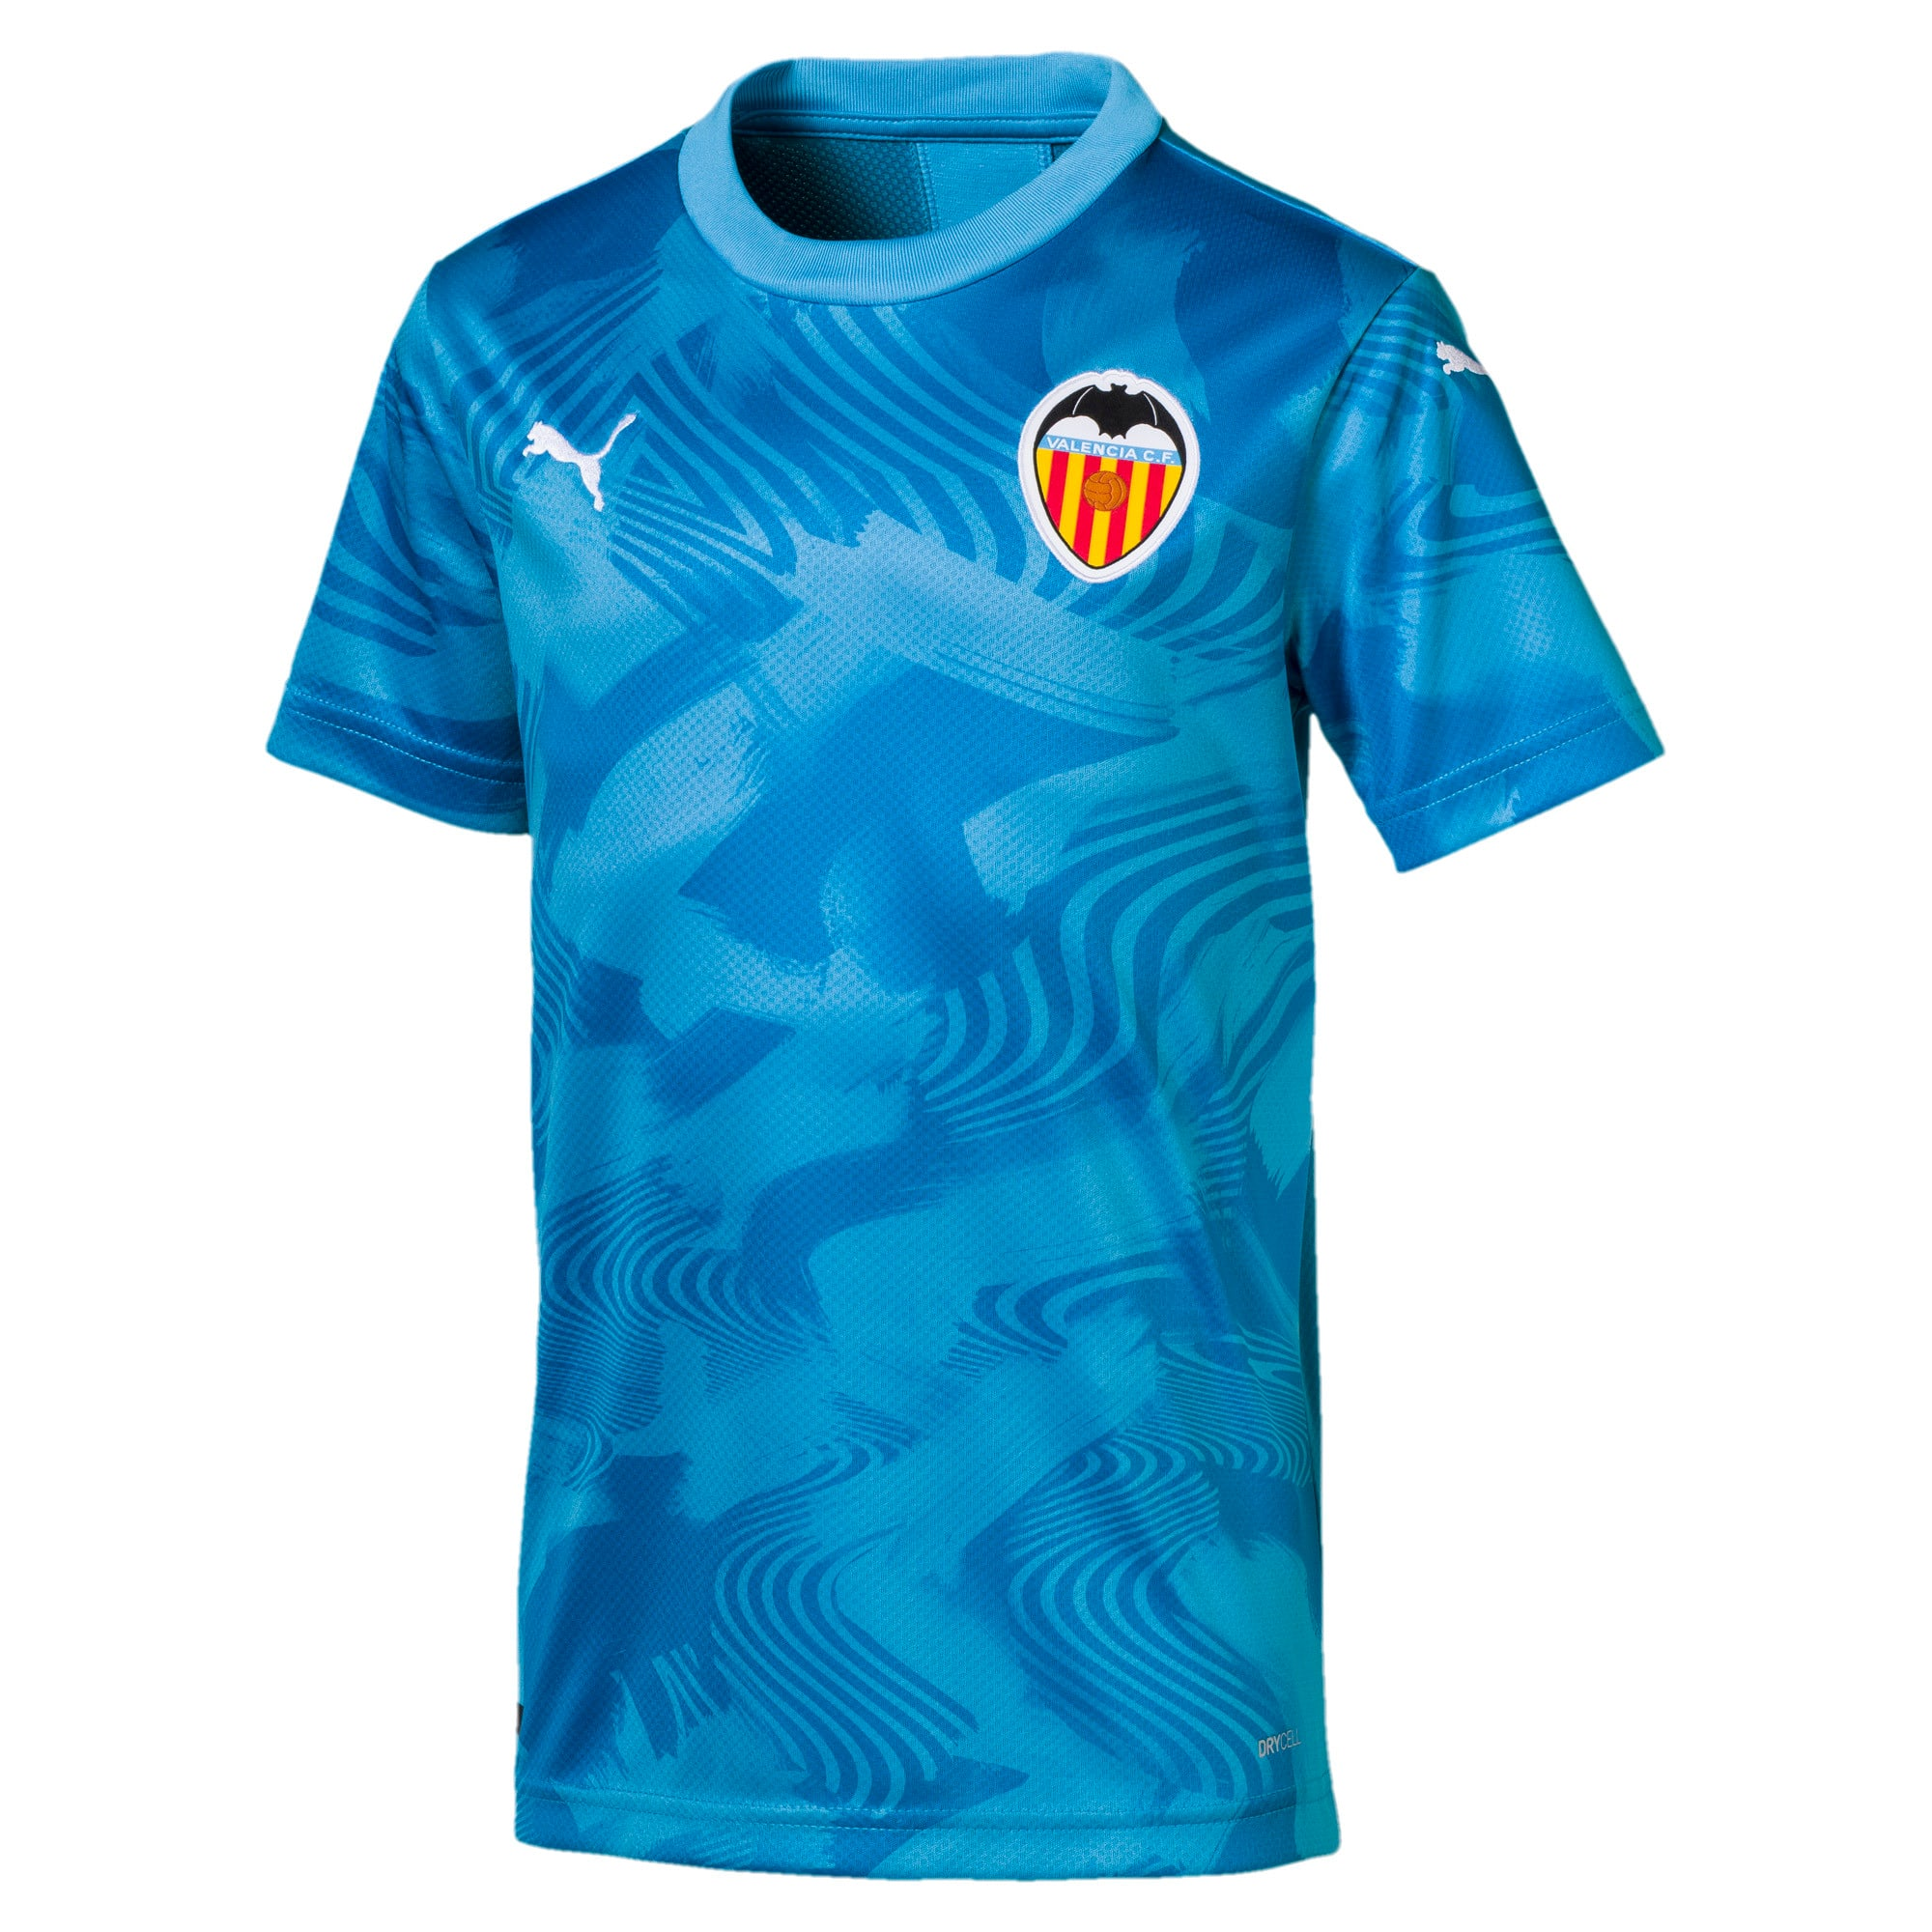 Thumbnail 1 of Valencia CF Third Replica Kids' Shirt, Bleu Azur-Indigo Bunting, medium